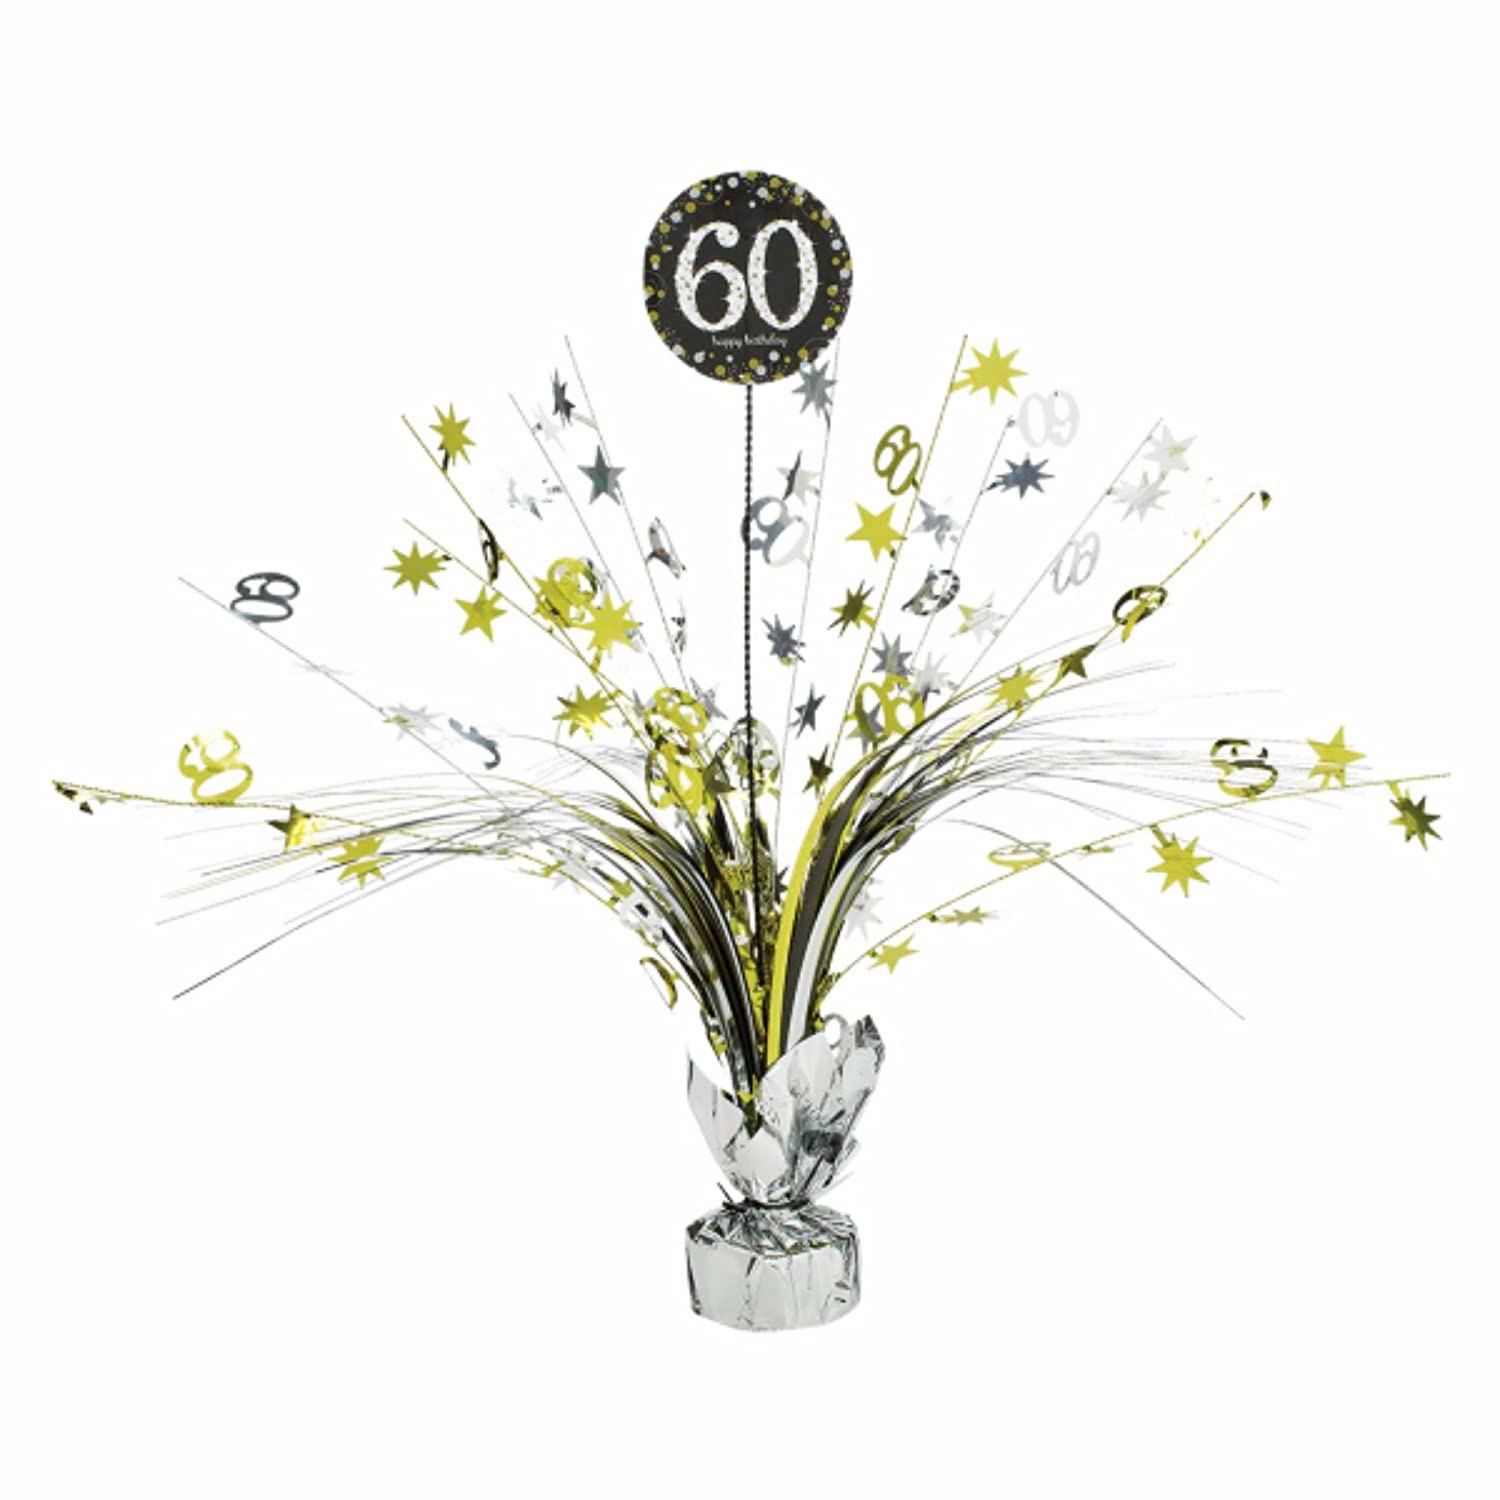 60th Birthday Spray Centrepiece Table Decoration Black Silver Gold Amazoncouk Baby